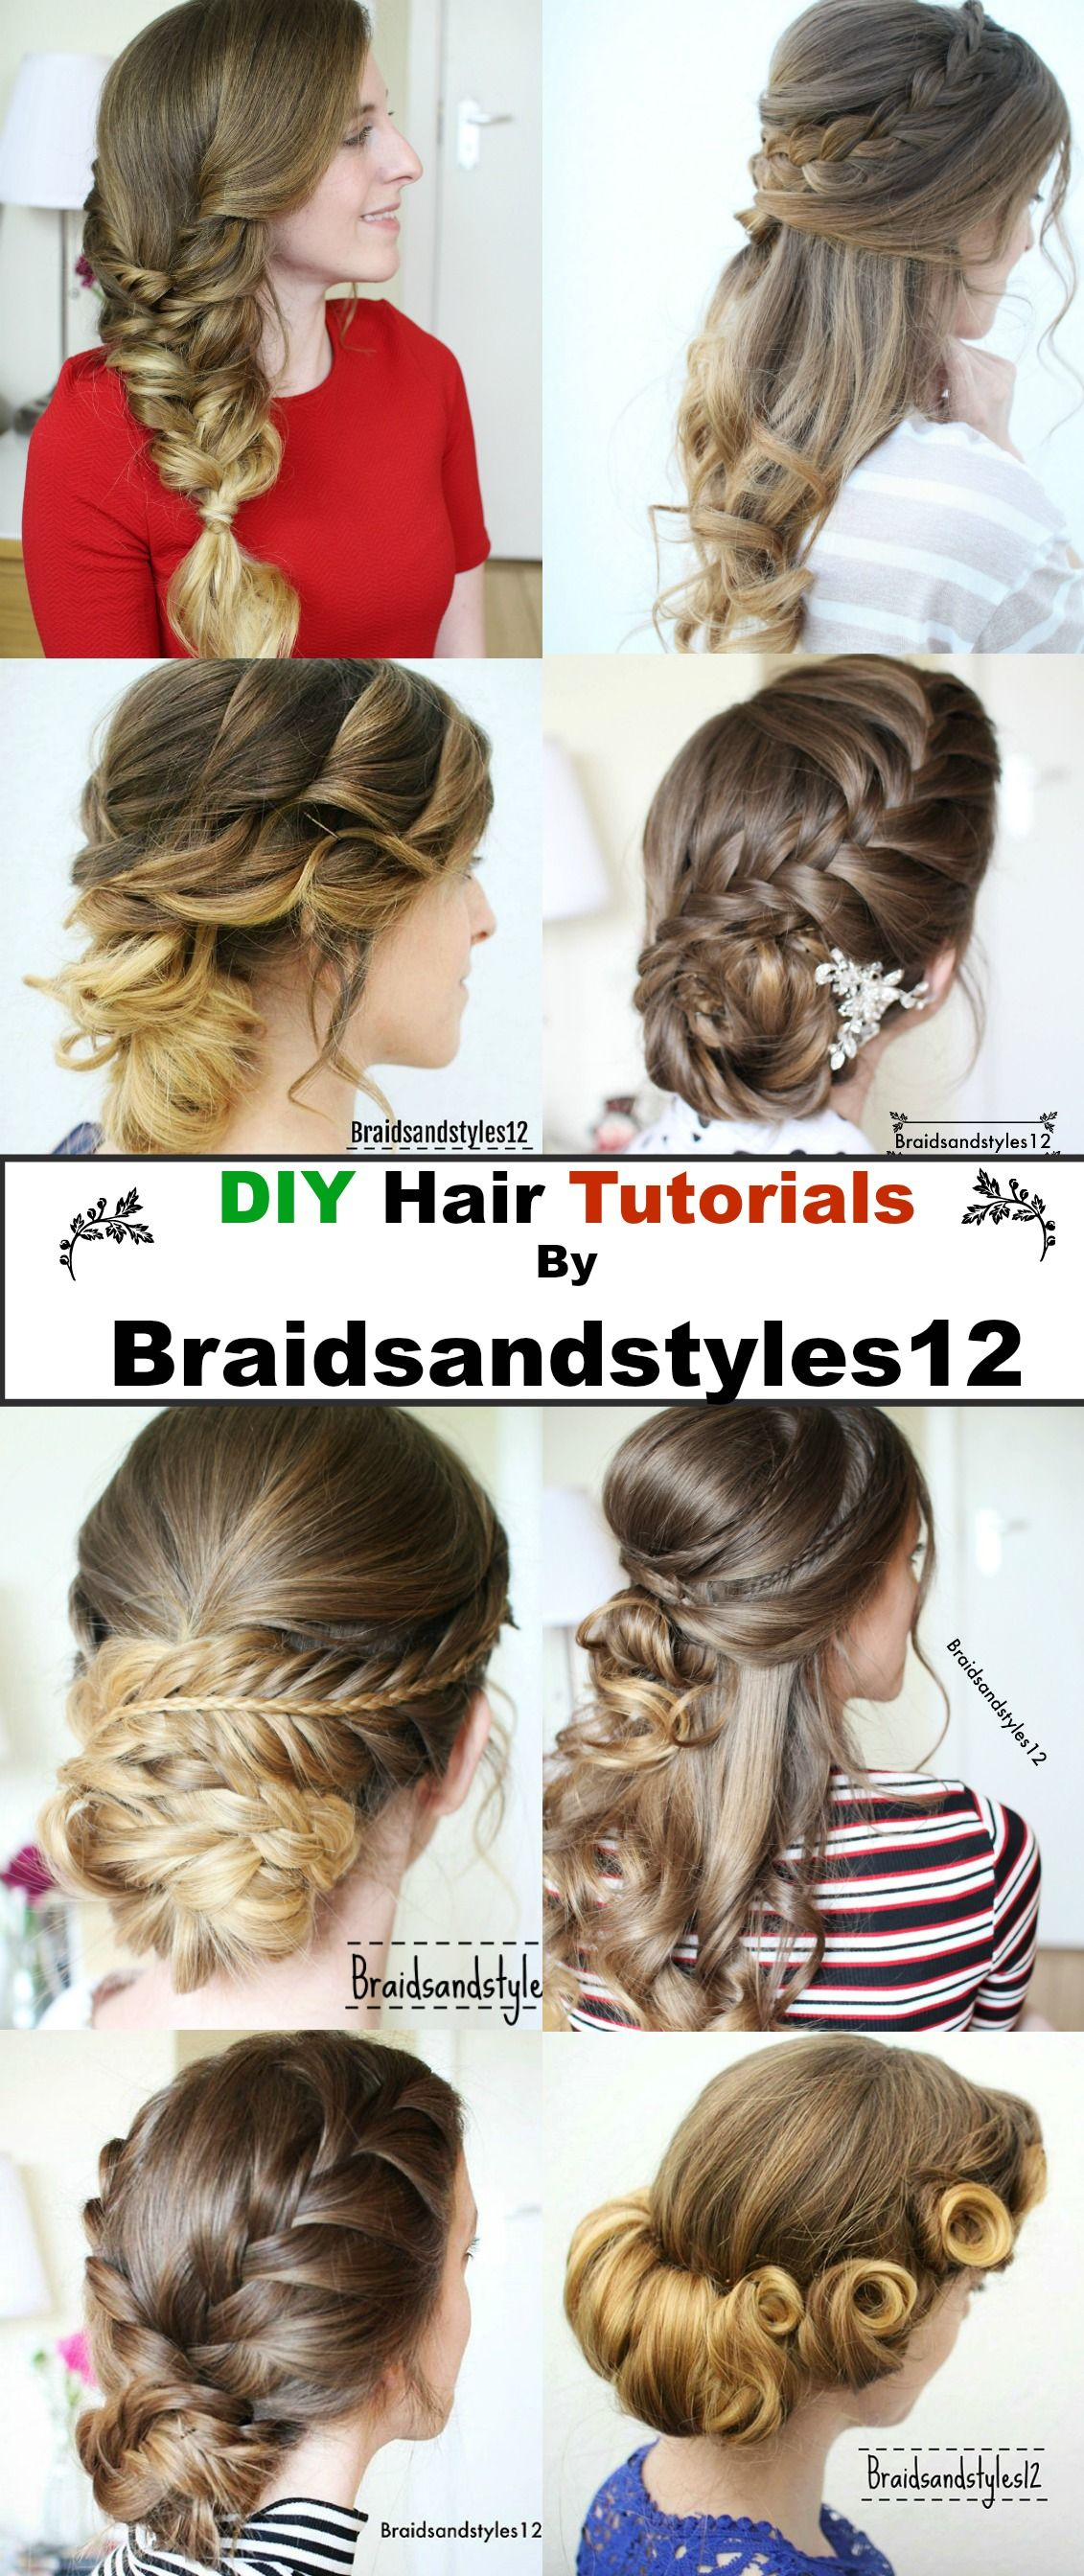 Diy holiday hairstyle ideas christmas hairstyle ideas party